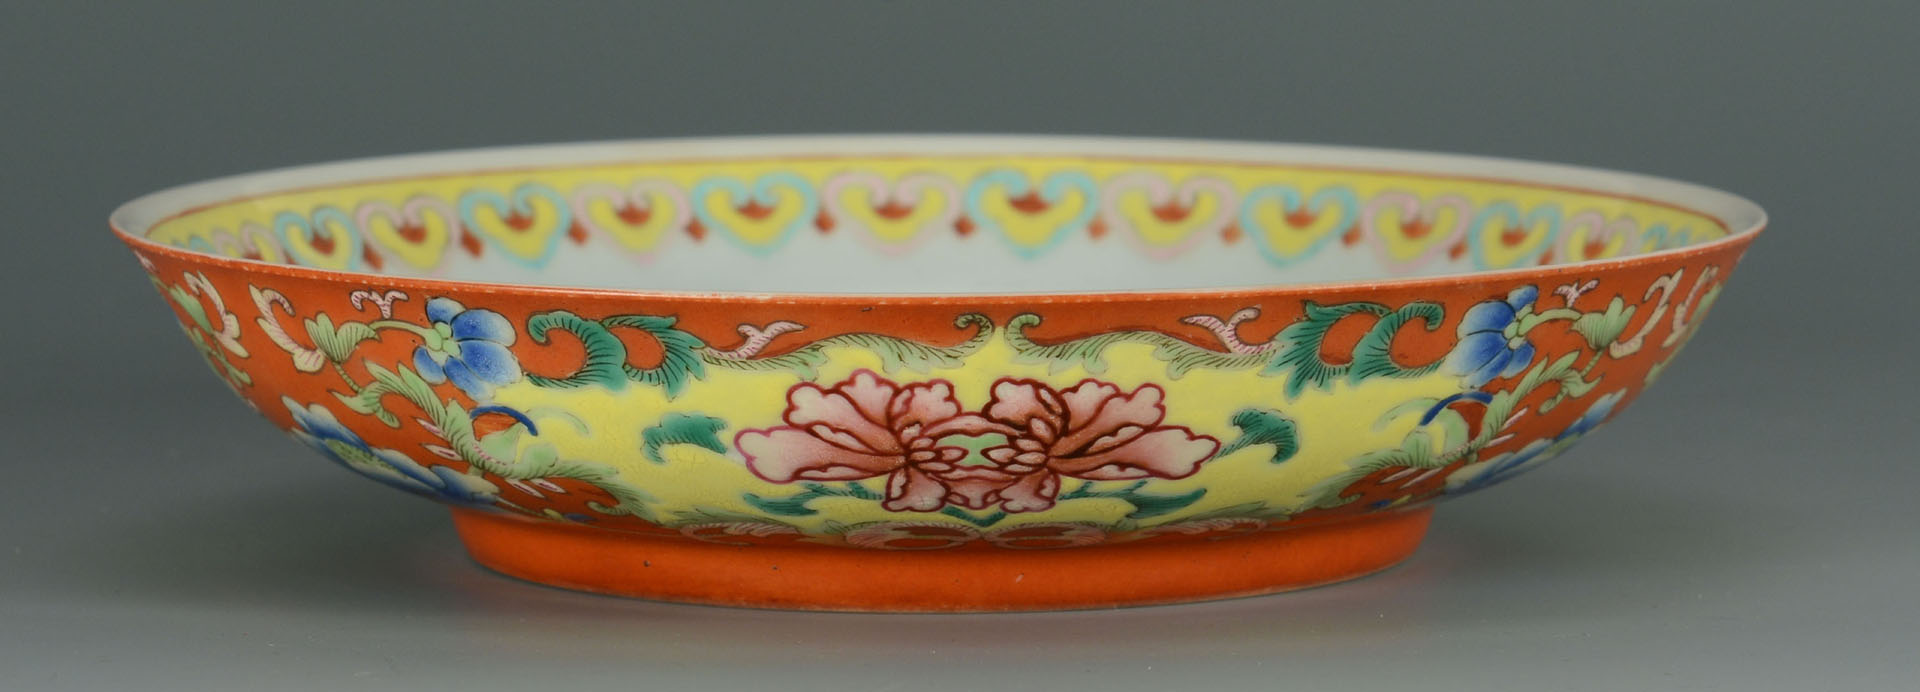 Lot 231: Chinese Porcelain Famille Rose Saucer Dish